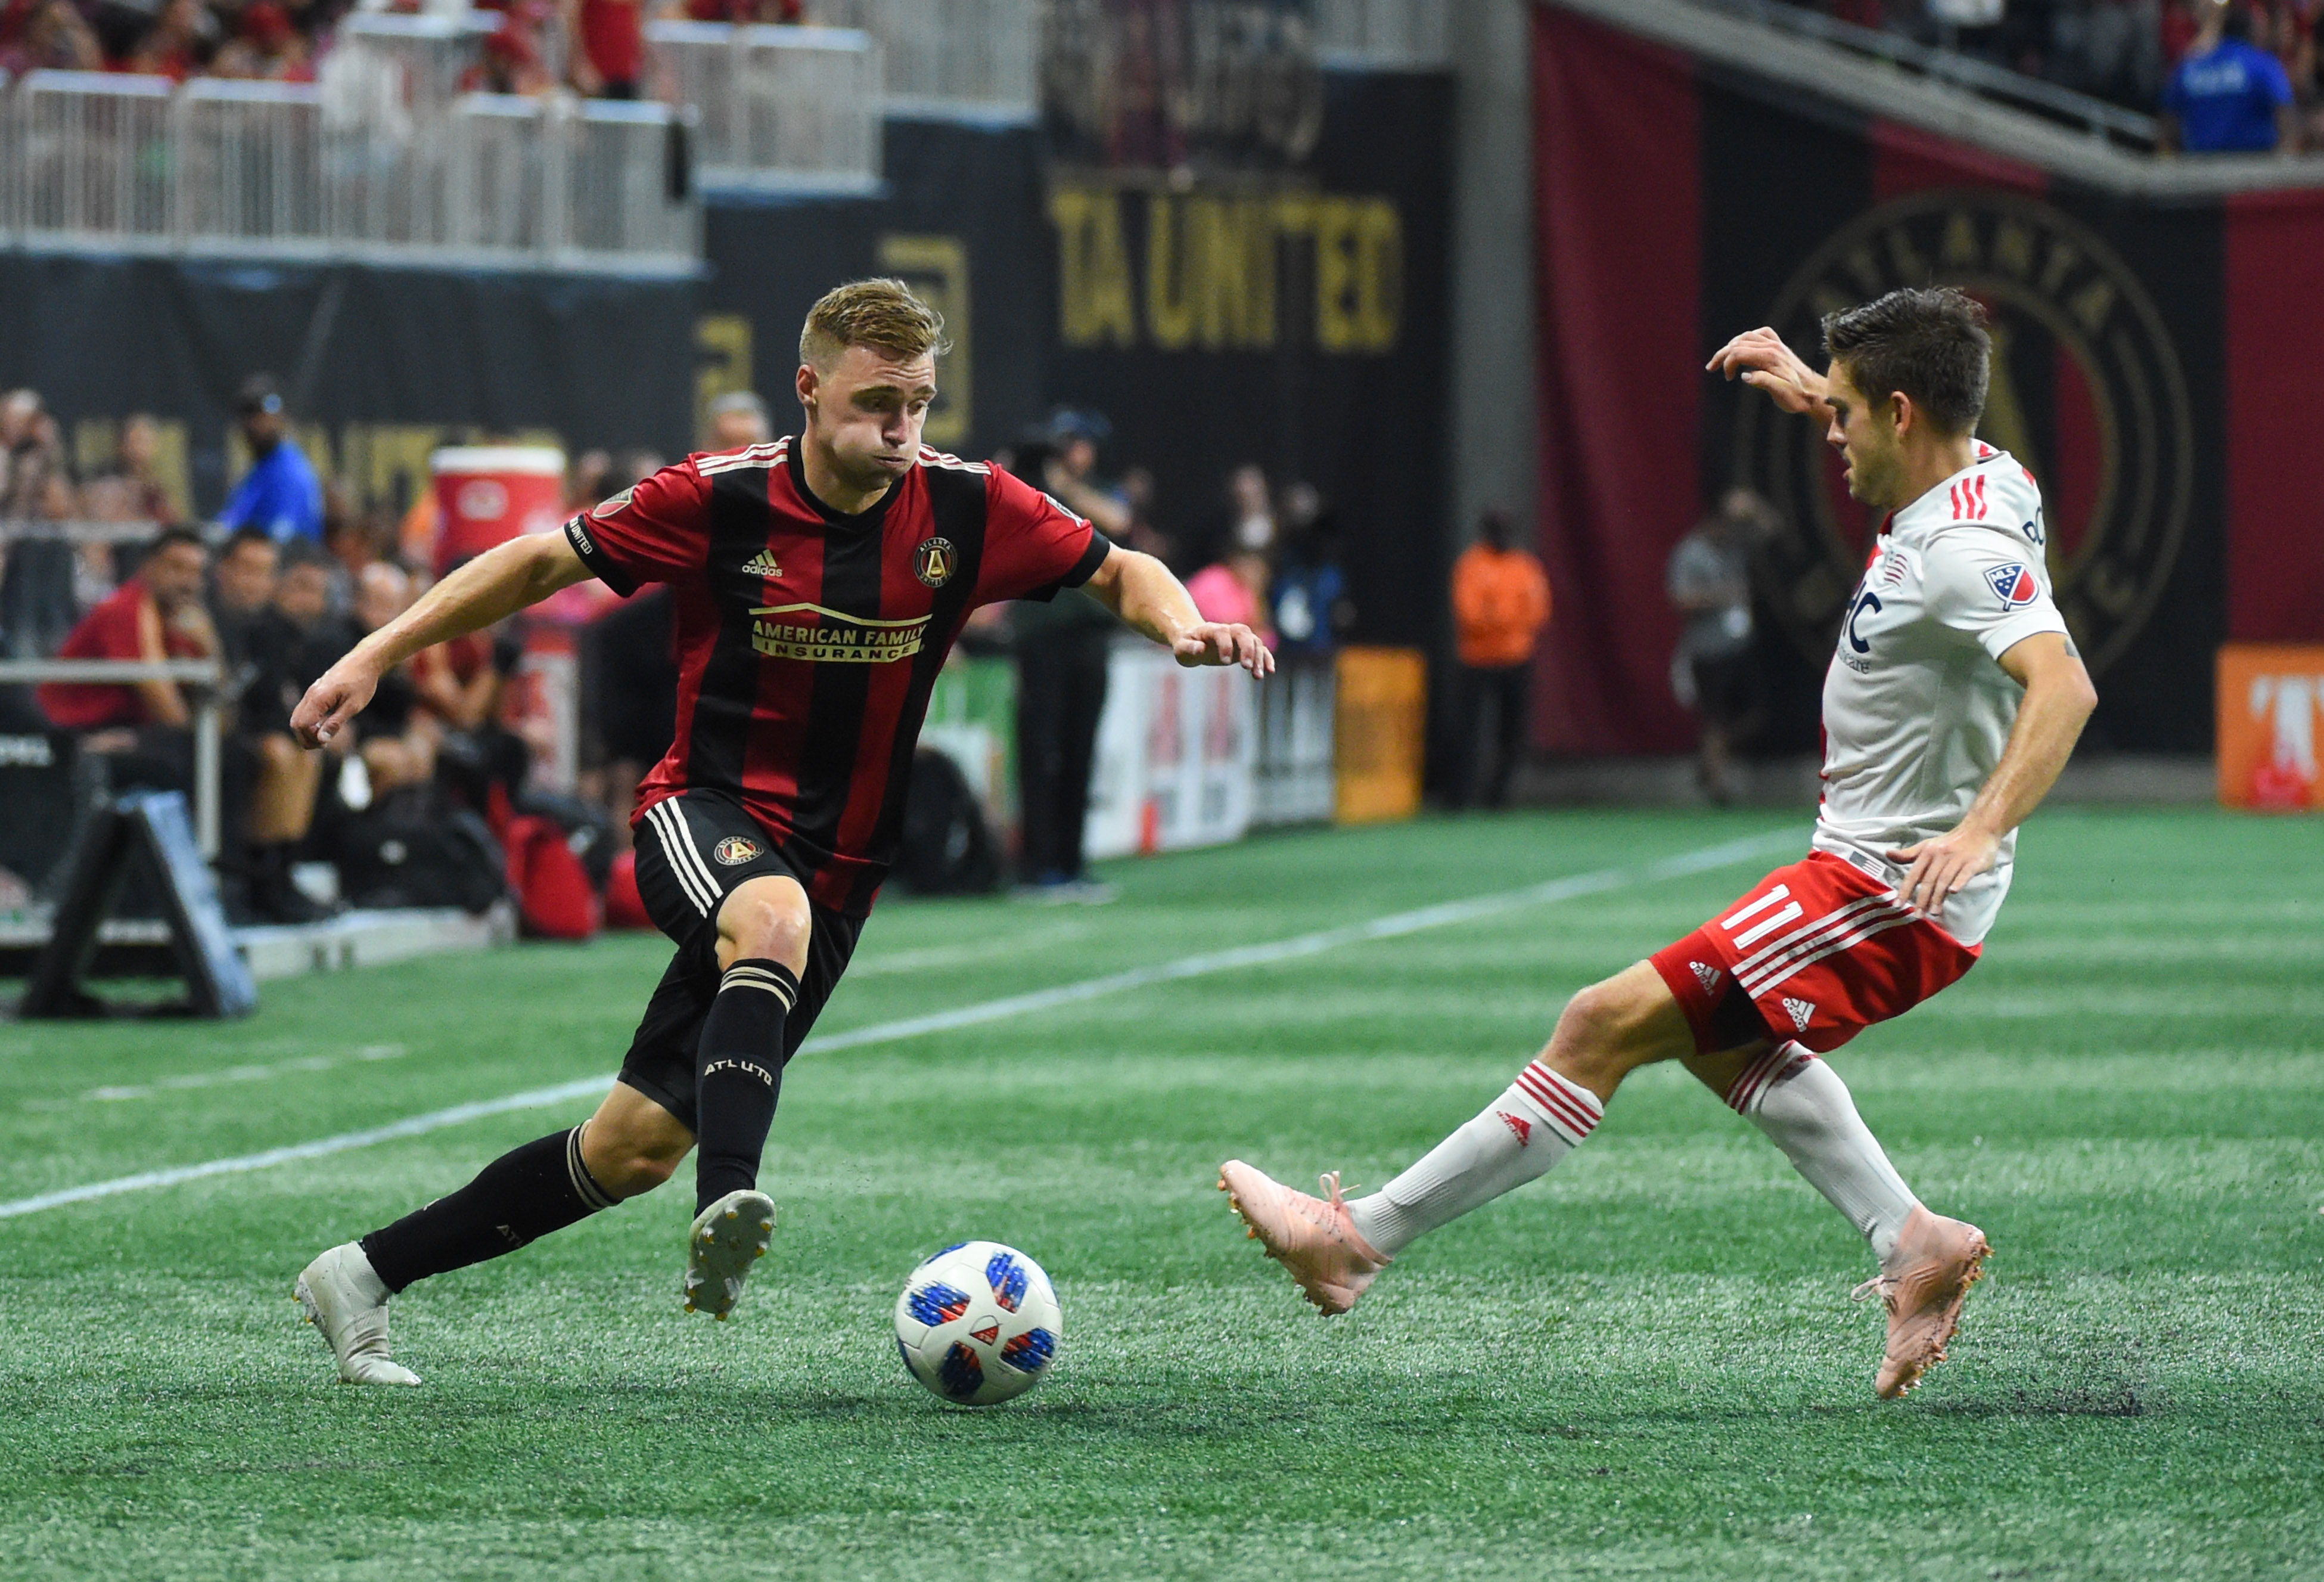 Dirty south soccer archives atlutd: match threads page 1.